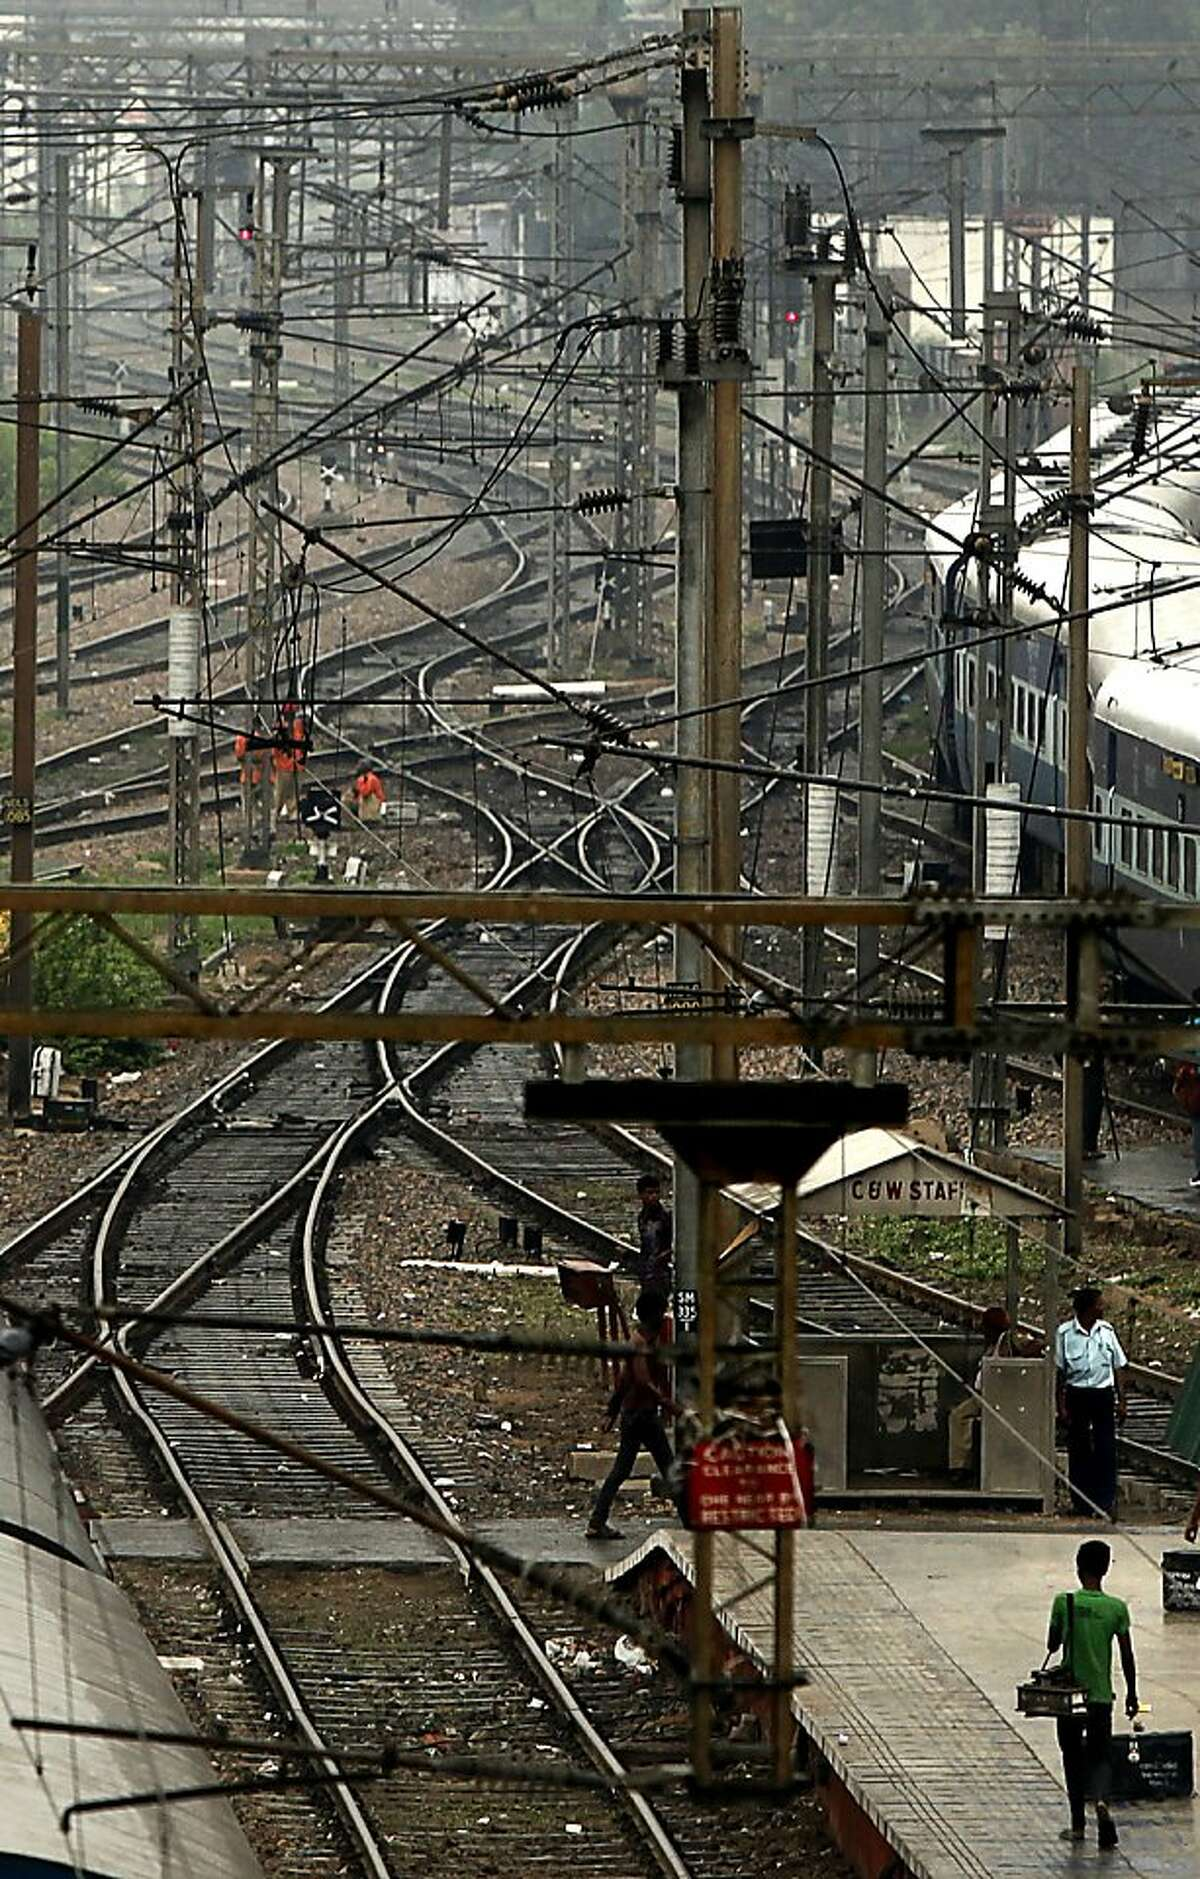 Empty railway tracks are seen following a power failure at New Delhi railway station, in New Delhi, India, Monday, July 30, 2012. The electricity grid across northern India failed Monday, leaving hundreds of millions of people without electricity in one of the worst power failures of the past decade, officials said. (AP Photo/Rajesh Kumar Singh)